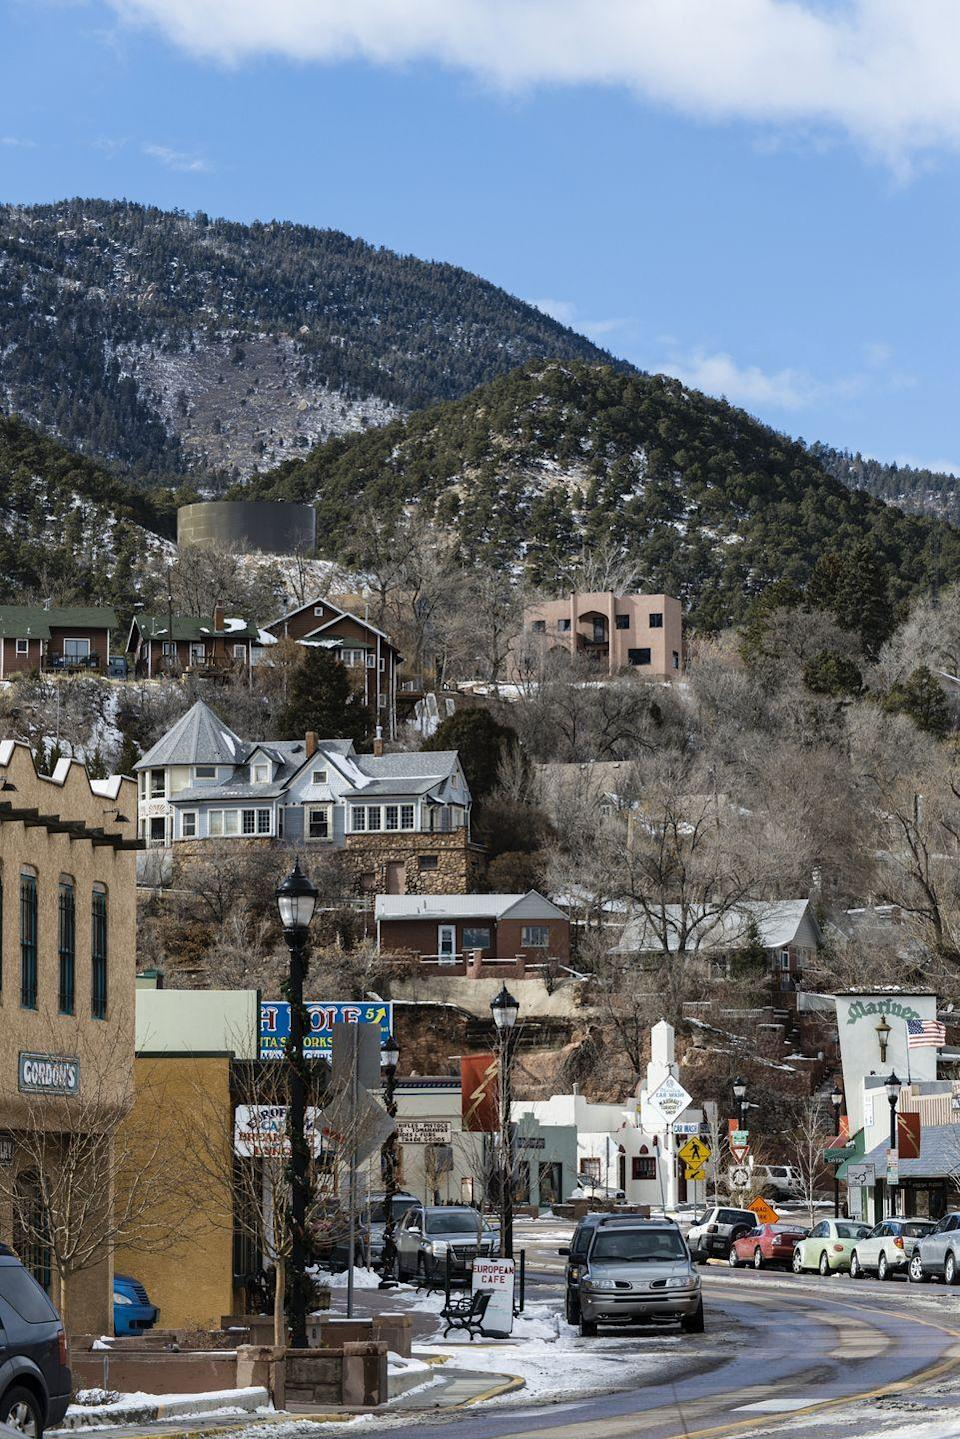 <p>Manitou Springs is just a quick trip away from Colorado Springs and is everything you'd want in a quaint mountain town. When you're not soaking in the charm down, you should check out the cliff dwelling ruins in the Mesa Verde National Park. </p>